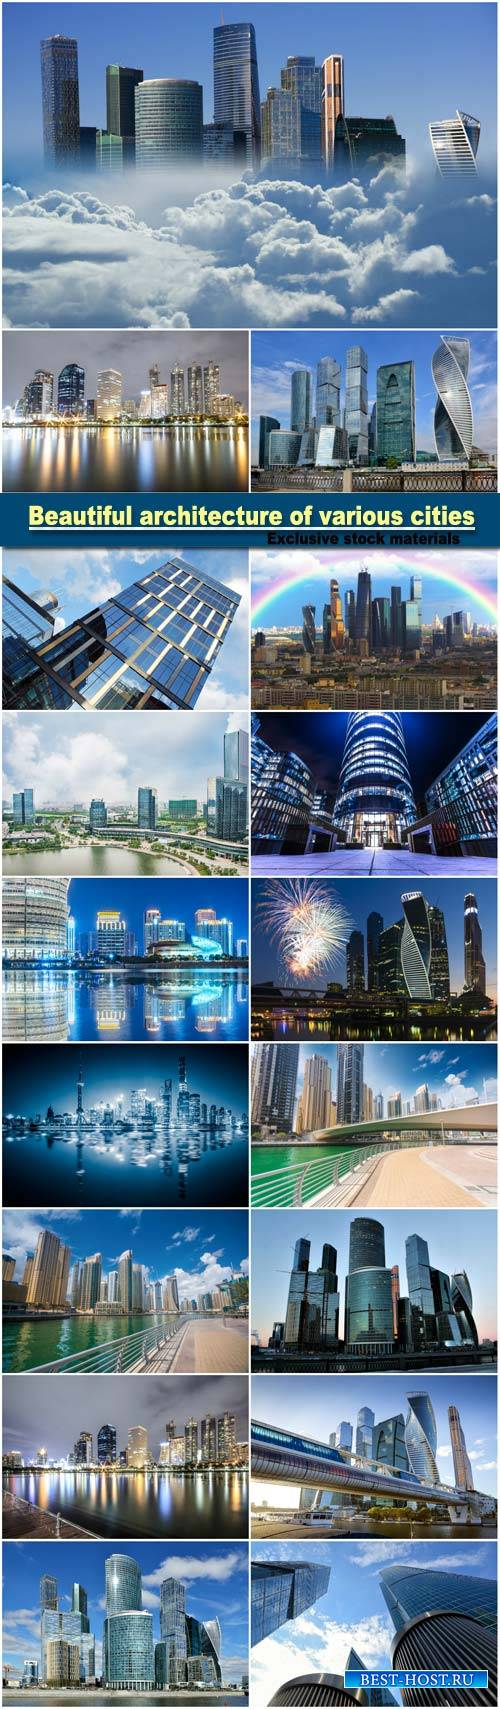 Beautiful architecture of various cities